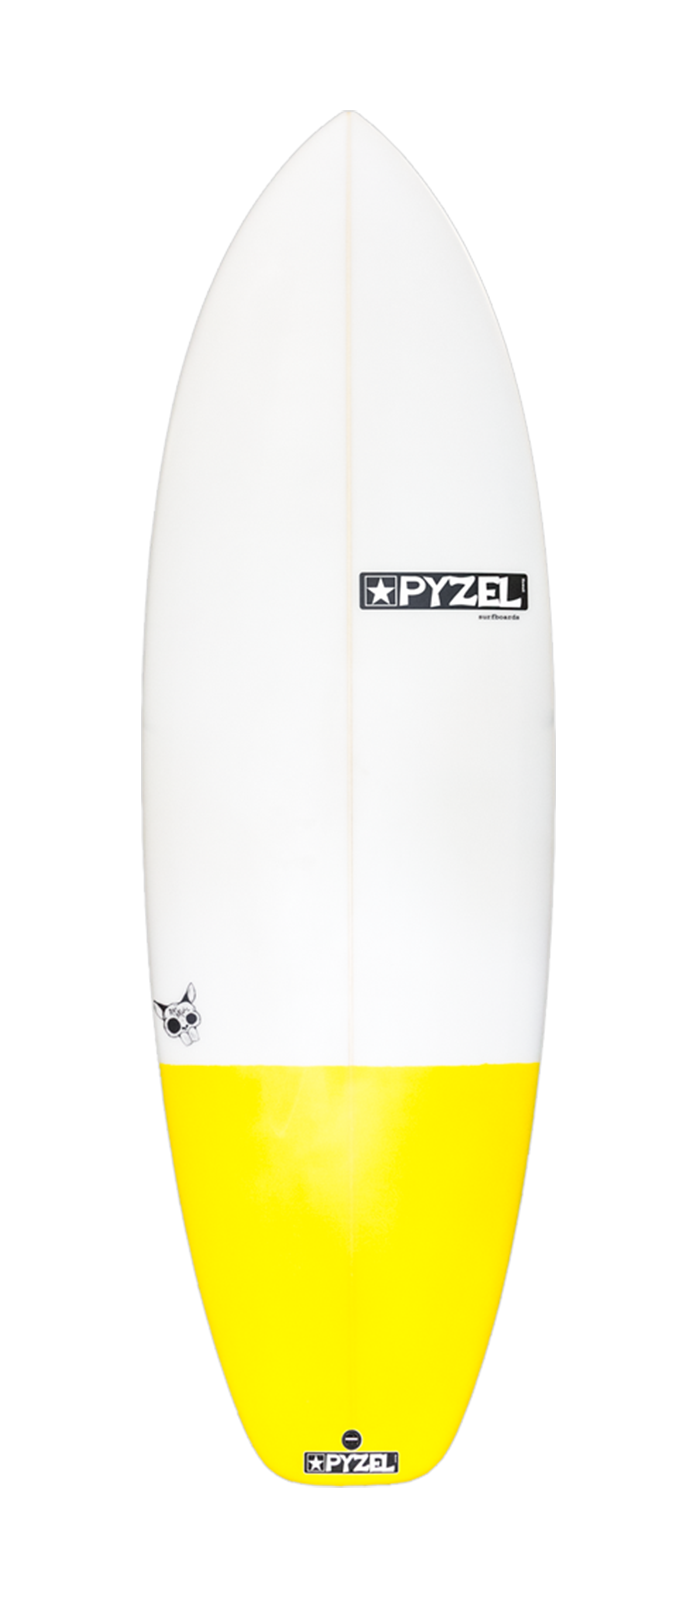 RAT SKULL surfboard model deck